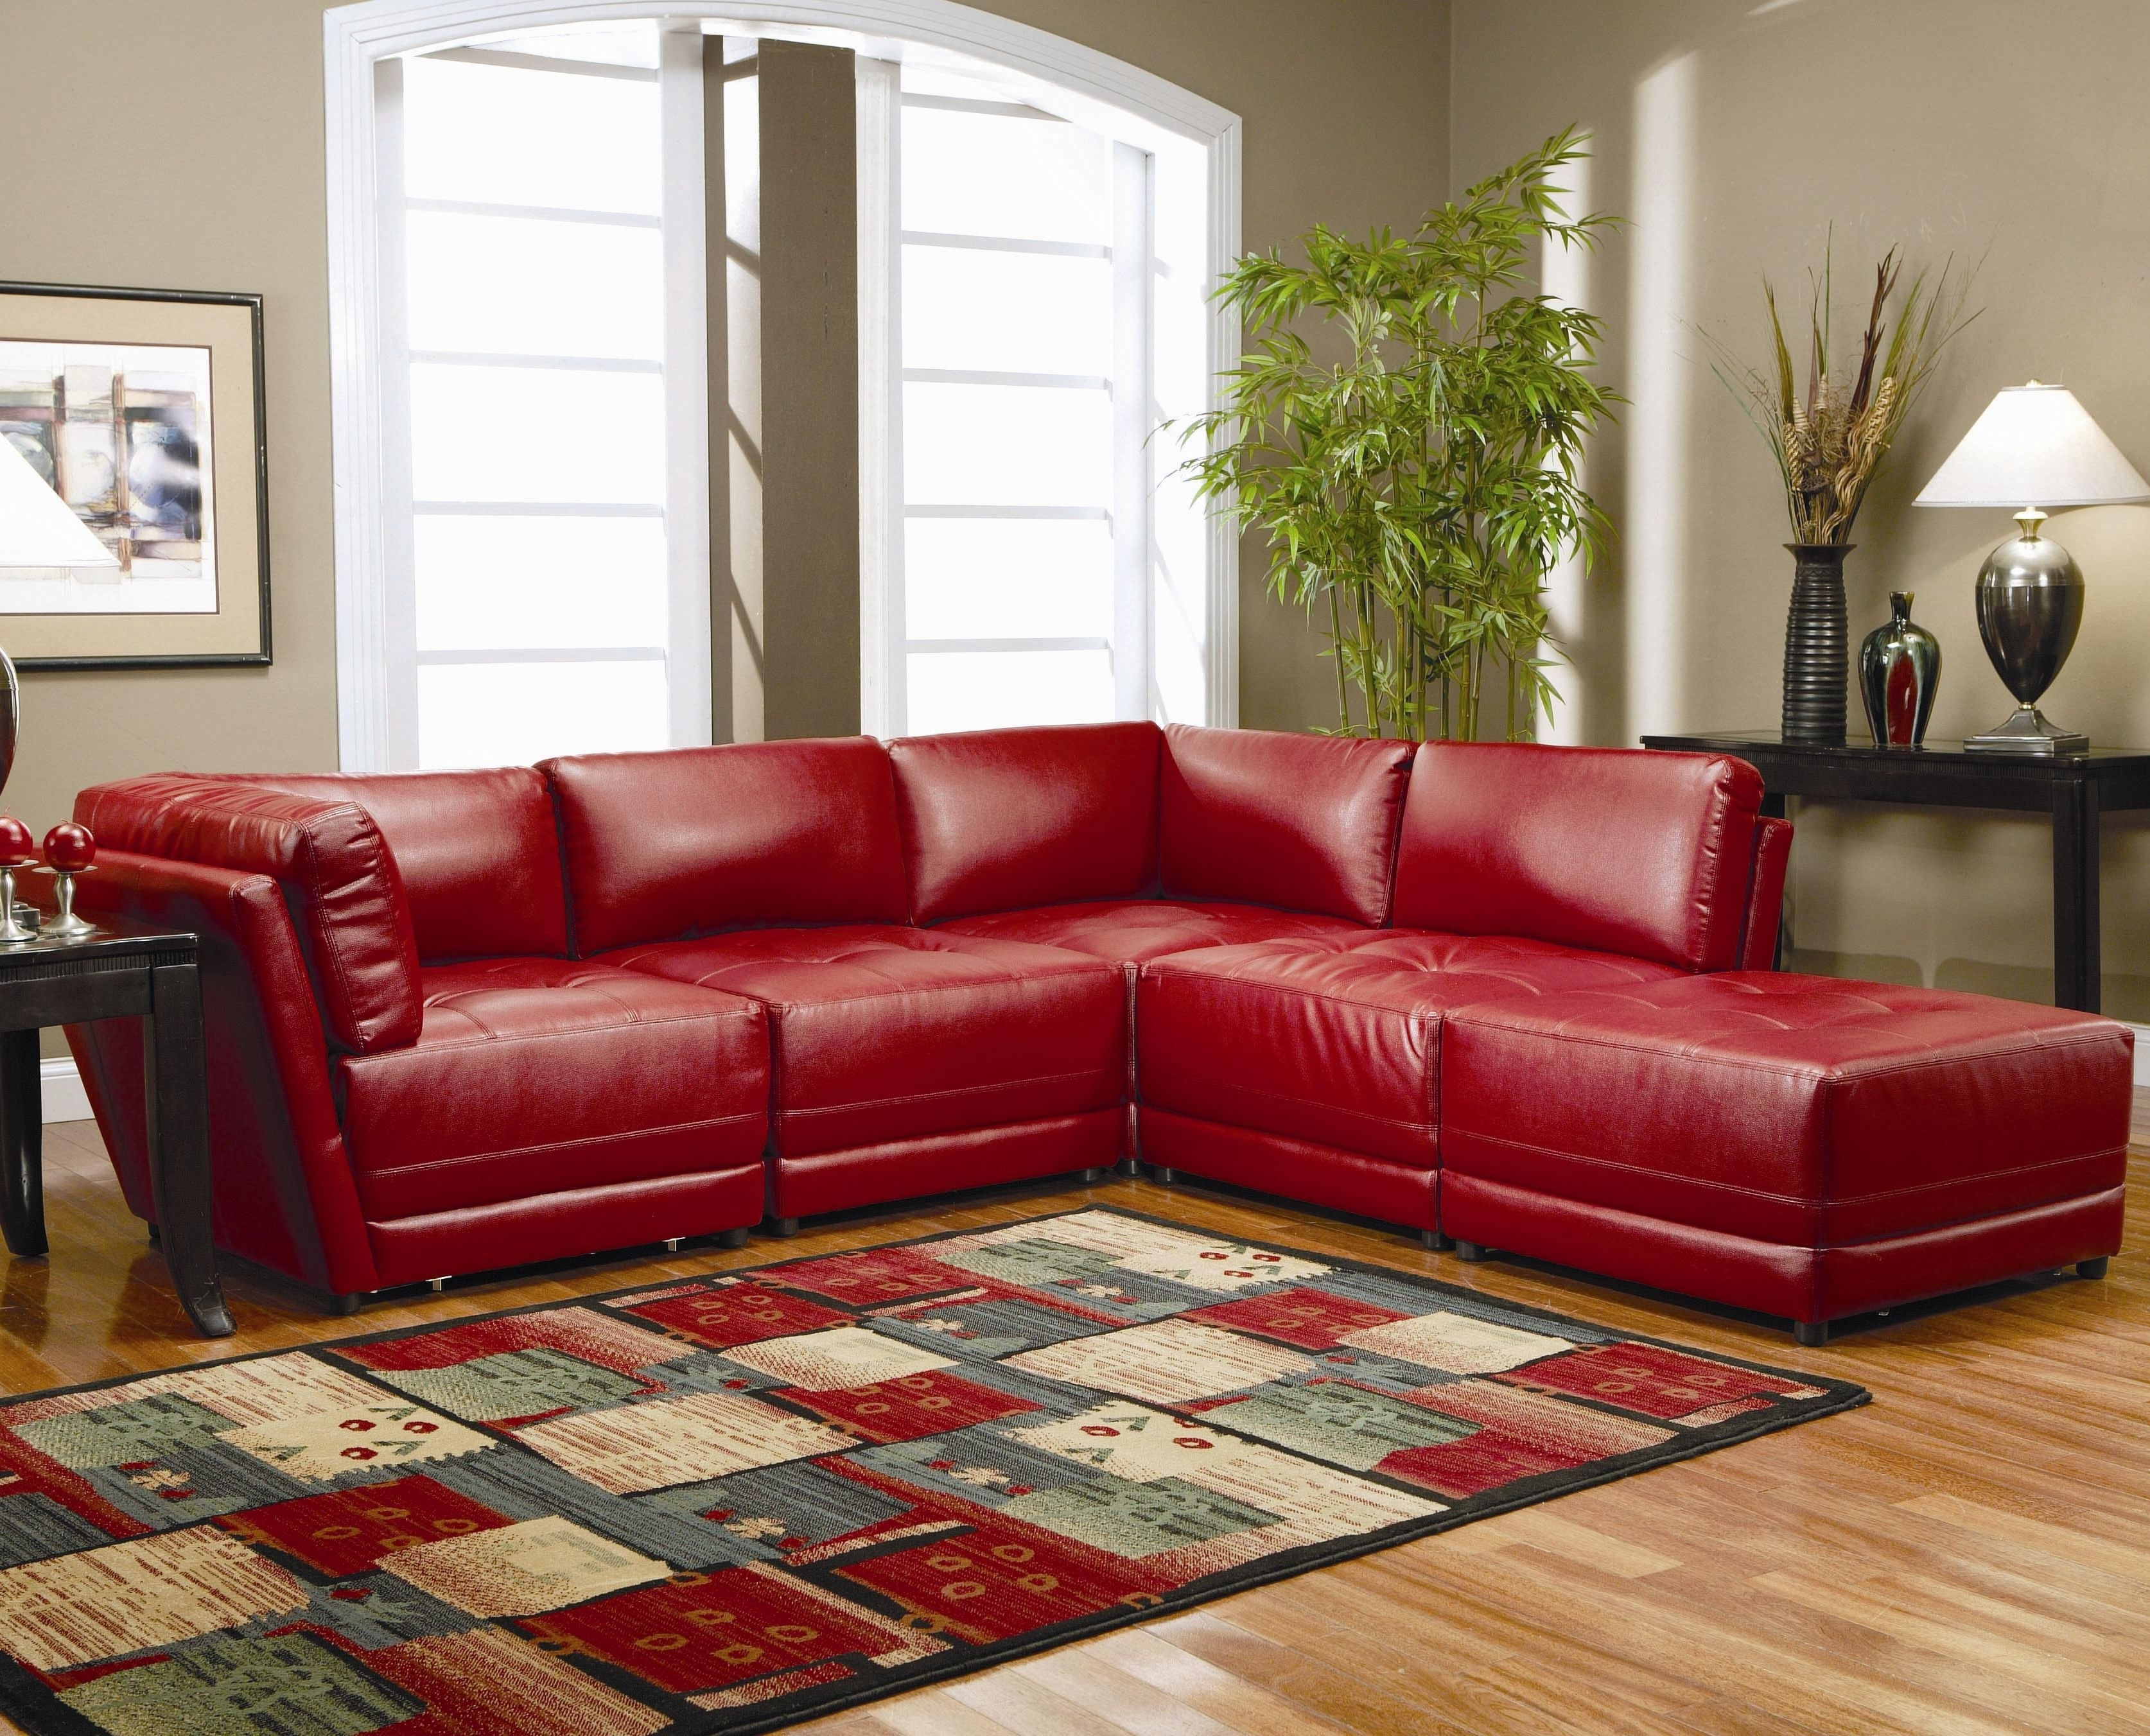 Leather Sofa Chaise | Aifaresidency Within Red Leather Sectionals With Chaise (Image 3 of 10)